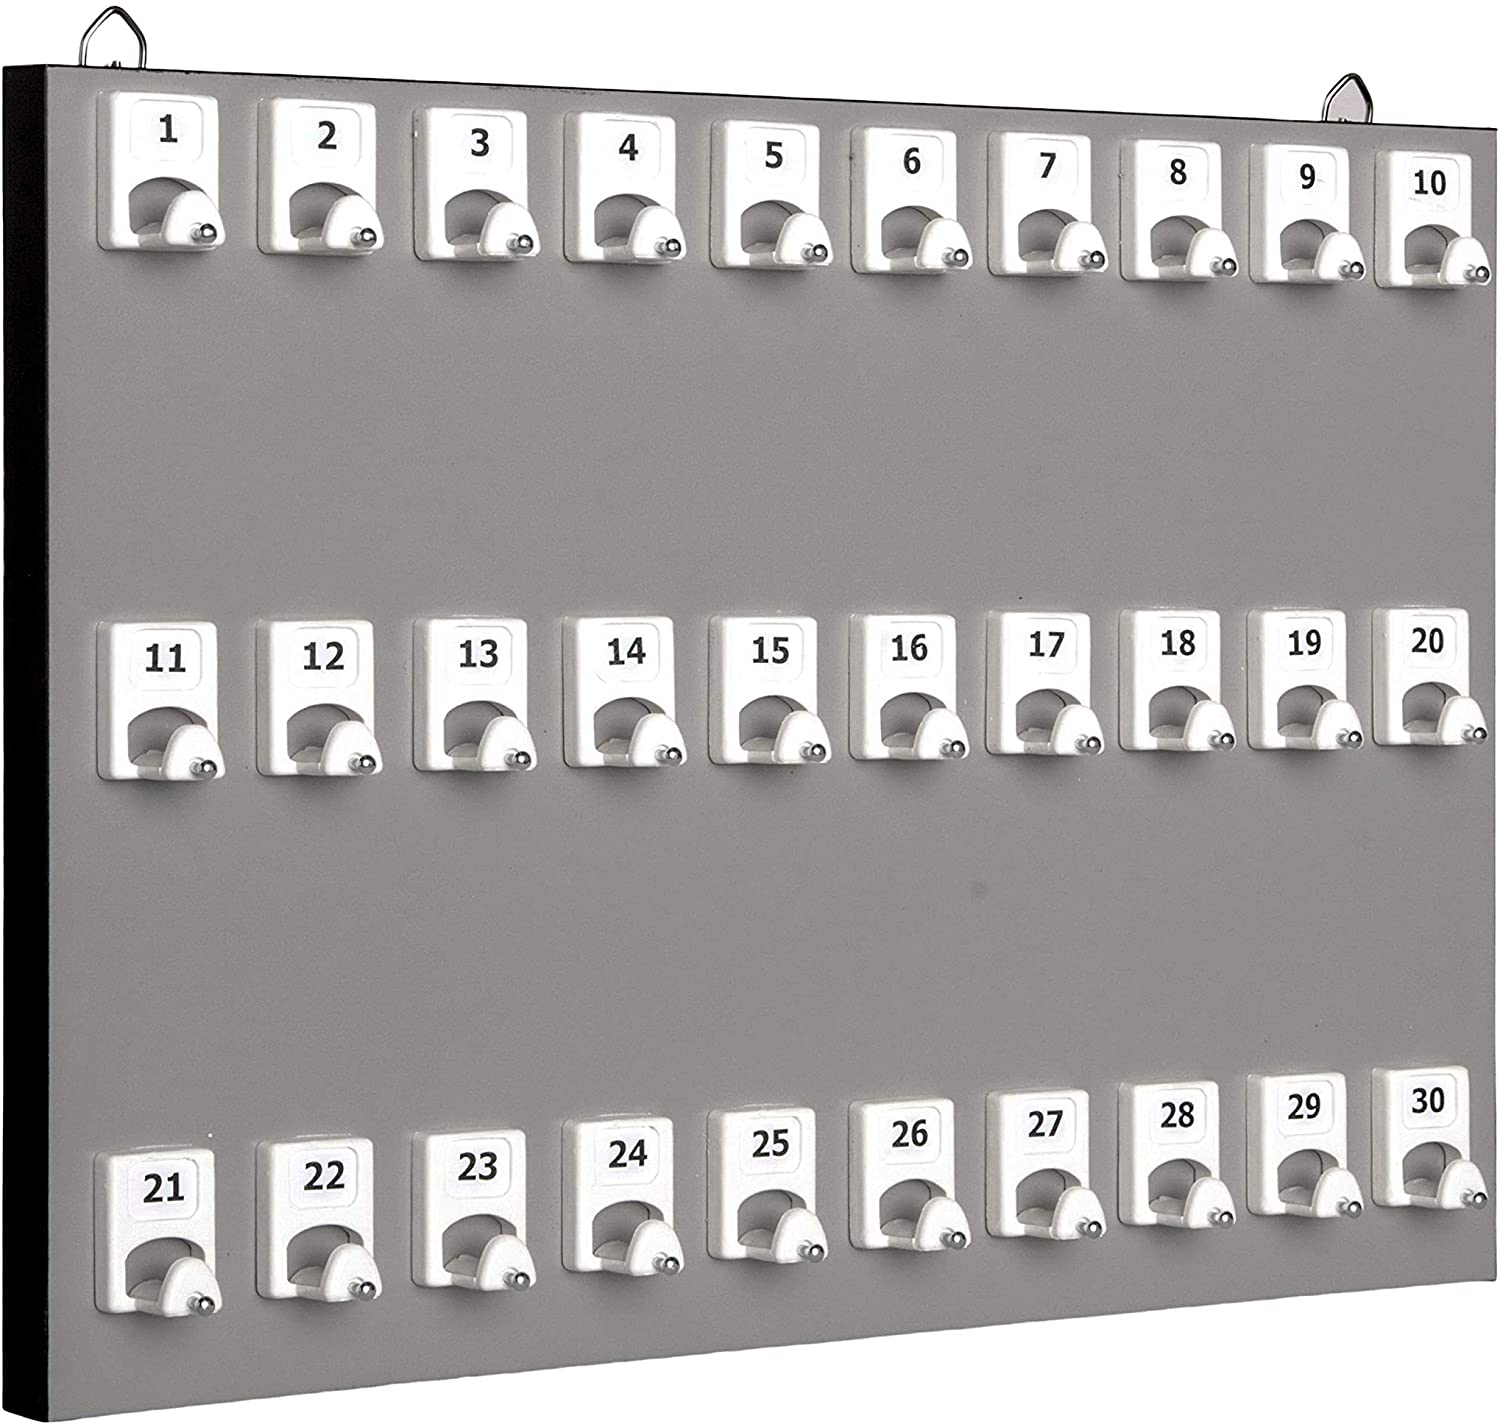 KEYSTAND # 30PGS with 30 Numbered Hooks for Real Estate Offices & Rentals (30 Sets of Tag & Ring Included)